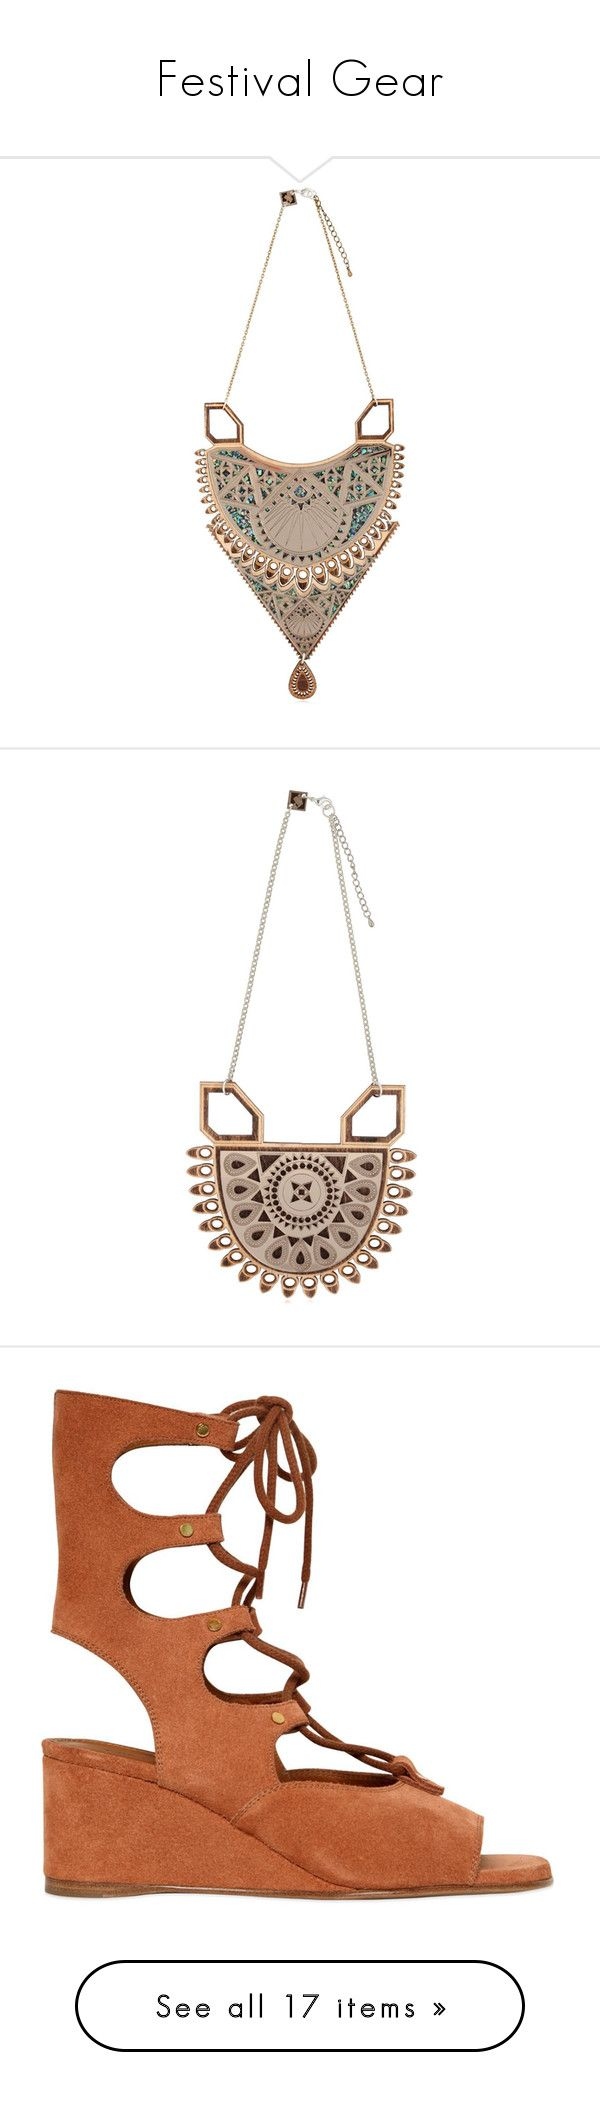 """""""Festival Gear"""" by luisaviaroma ❤ liked on Polyvore featuring jewelry, necklaces, rose, adjustable necklace, wooden necklaces, wooden chain necklace, adjustable chain necklace, wood chain necklace, bags and handbags"""